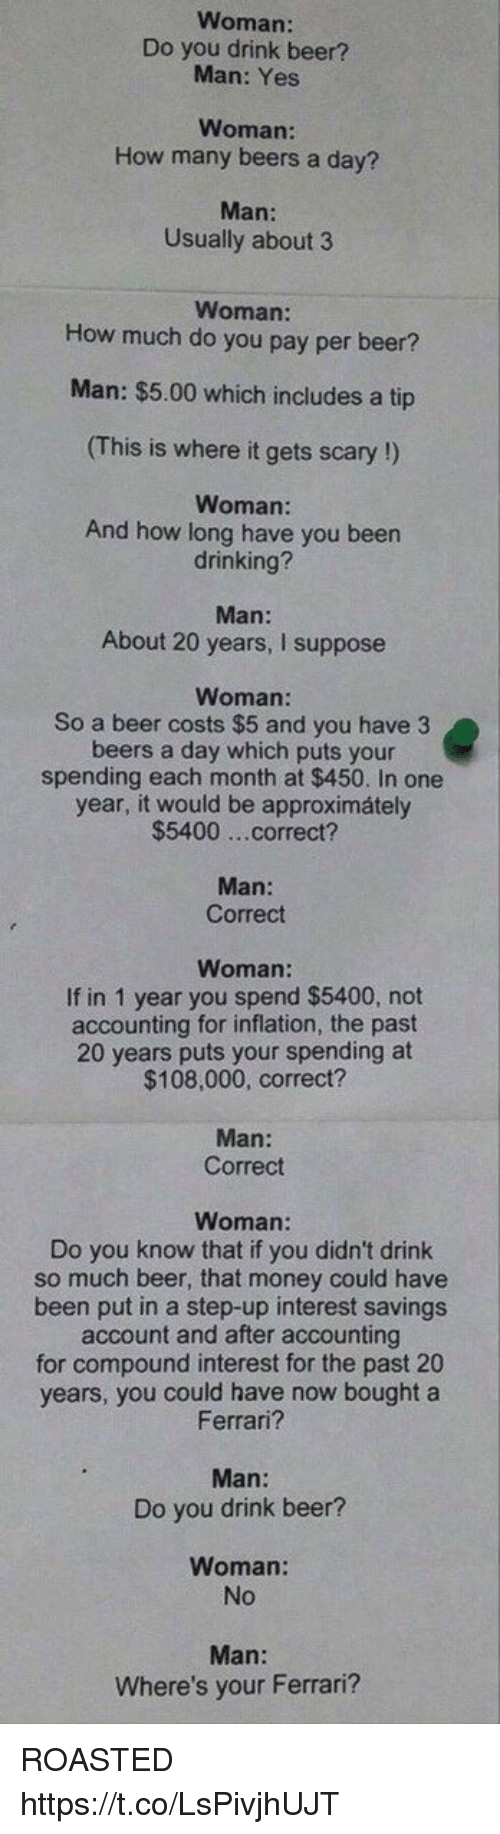 drinking beers: Woman:  Do you drink beer?  Man: Yes  Woman  How many beers a day?  Man:  Usually about 3  Woman:  How much do you pay per beer?  Man: $5.00 which includes a tip  (This is where it gets scary !)  Woman:  And how long have you been  drinking?  Man:  About 20 years, I suppose  Woman:  So a beer costs $5 and you have 3  beers a day which puts your  spending each month at $450. In one  year, it would be approximátely  $5400 ...correct?  Man:  Correct  Woman:  If in 1 year you spend $5400, not  accounting for inflation, the past  20 years puts your spending at  $108,000, correct?  Man:  Correct  Woman  Do you know that if you didn't drink  so much beer, that money could have  been put in a step-up interest savings  account and after accounting  for compound interest for the past 20  years, you could have now bought a  Ferrari?  Man:  Do you drink beer?  Woman:  No  Where's your Ferrari? ROASTED https://t.co/LsPivjhUJT